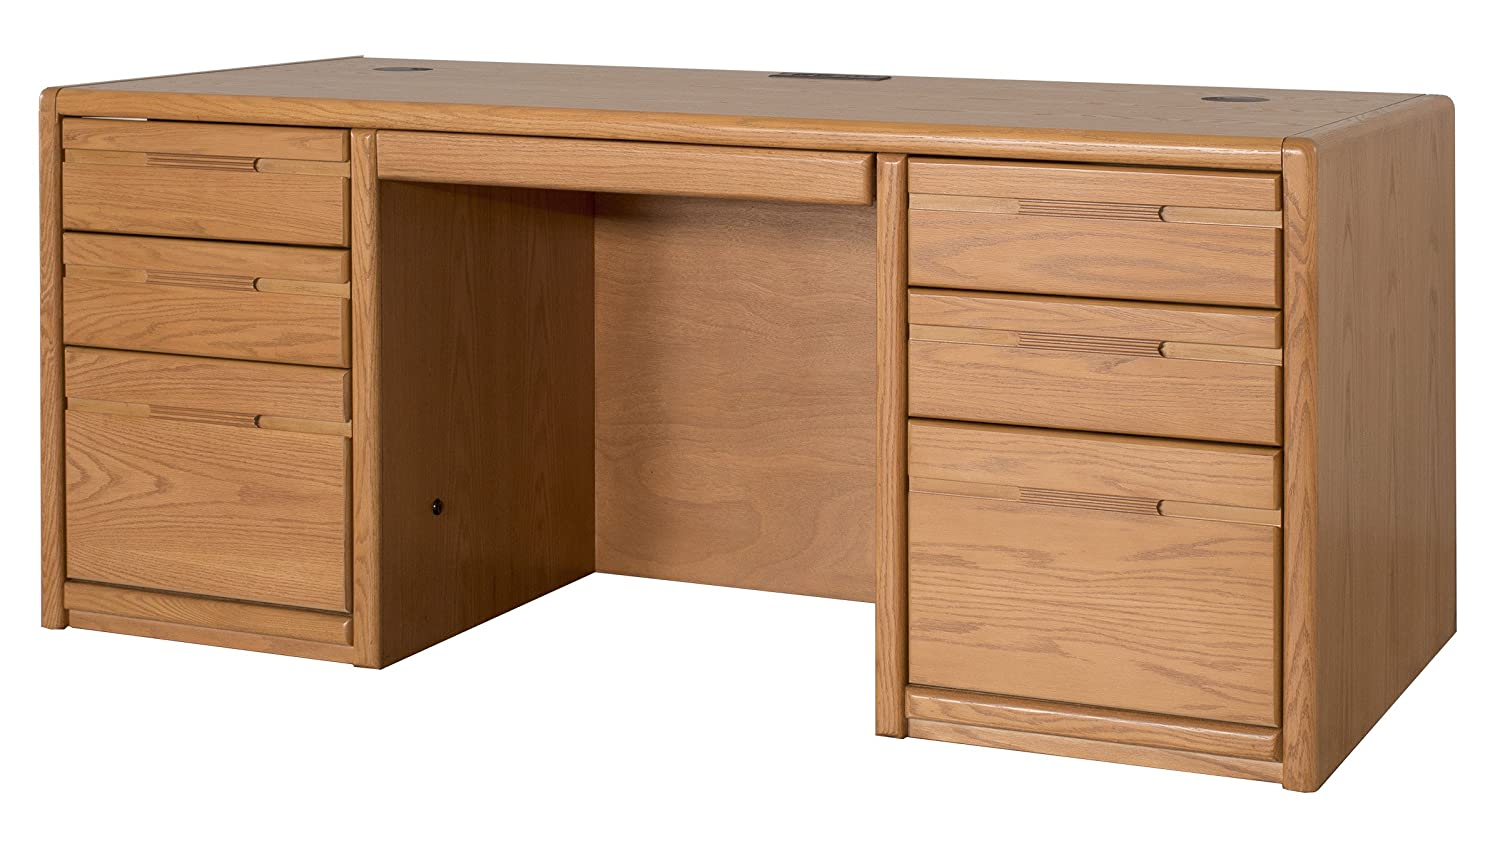 Kathy Ireland Home By Martin Contemporary 68 Double Pedestal Executive Desk - Fully Assembled